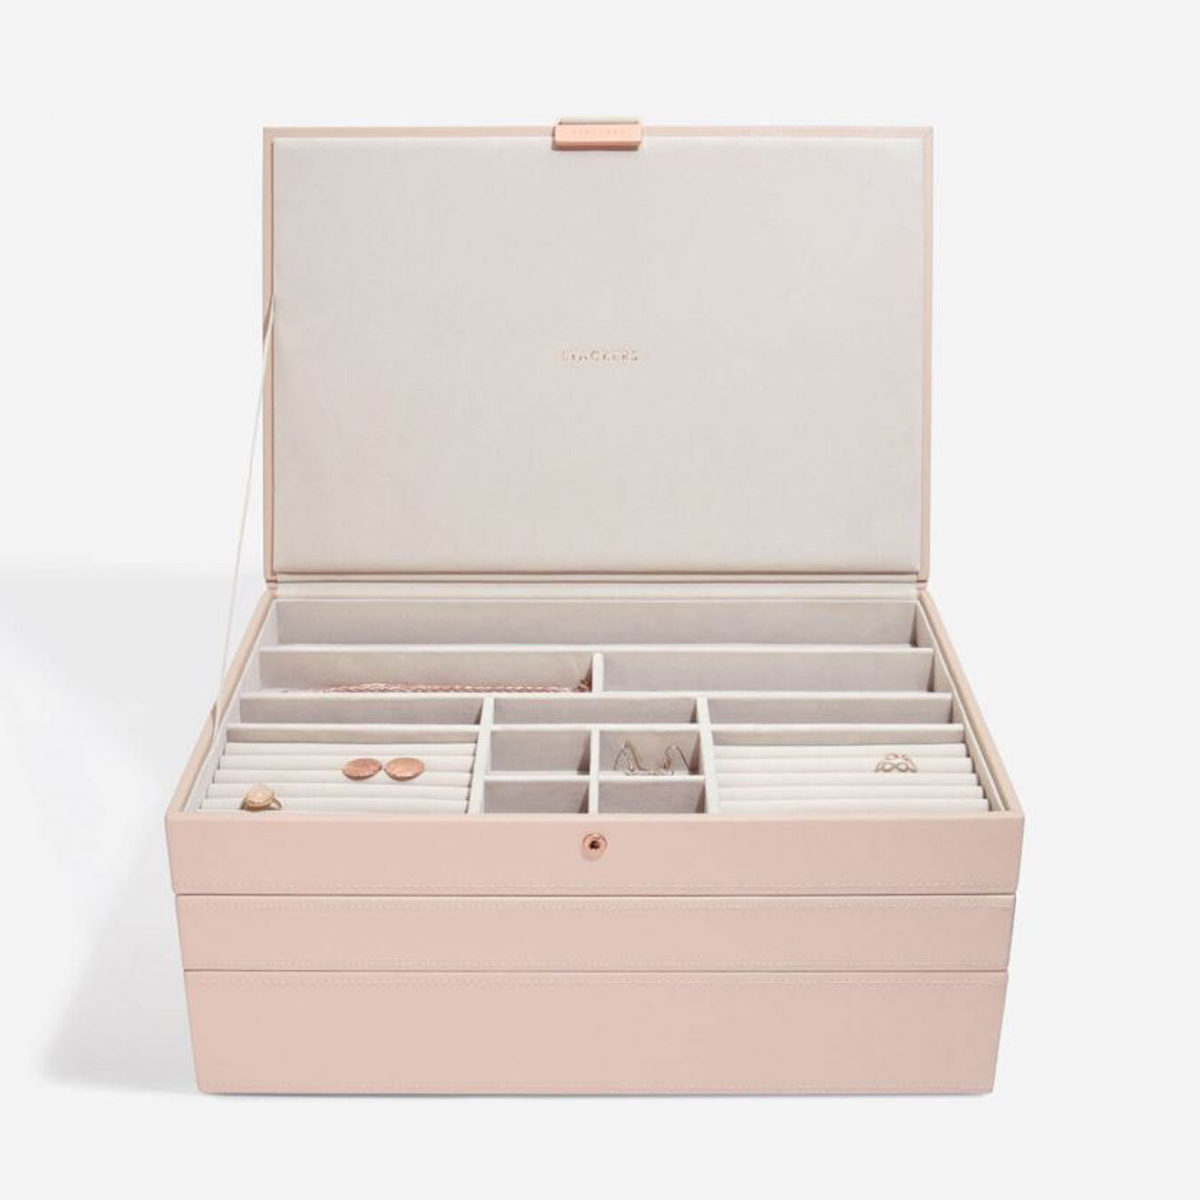 Sieradendoos Blush Supersize set